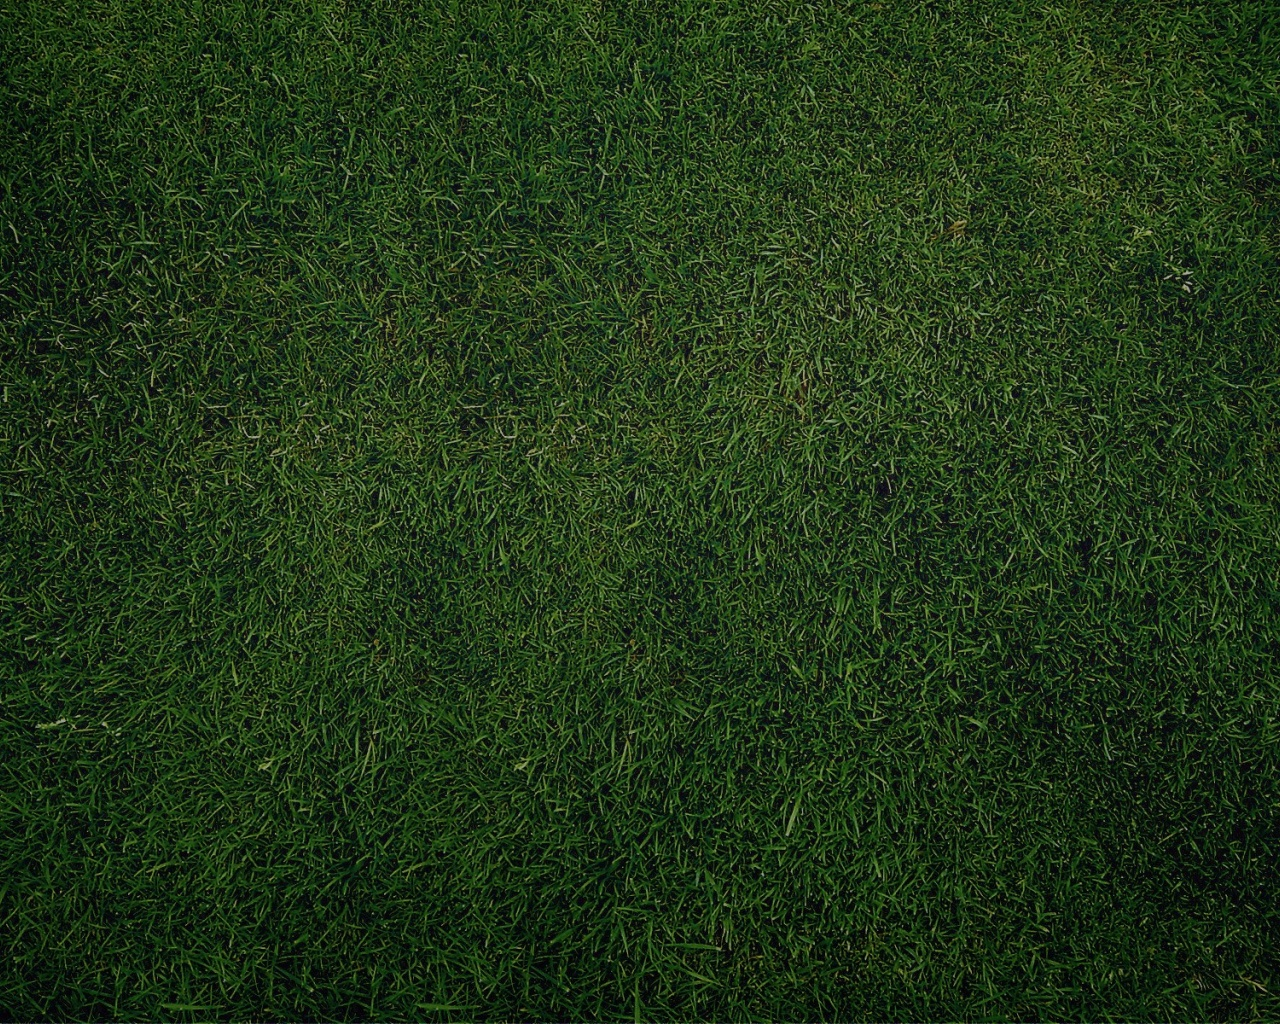 1280x1024 Green Grass Background